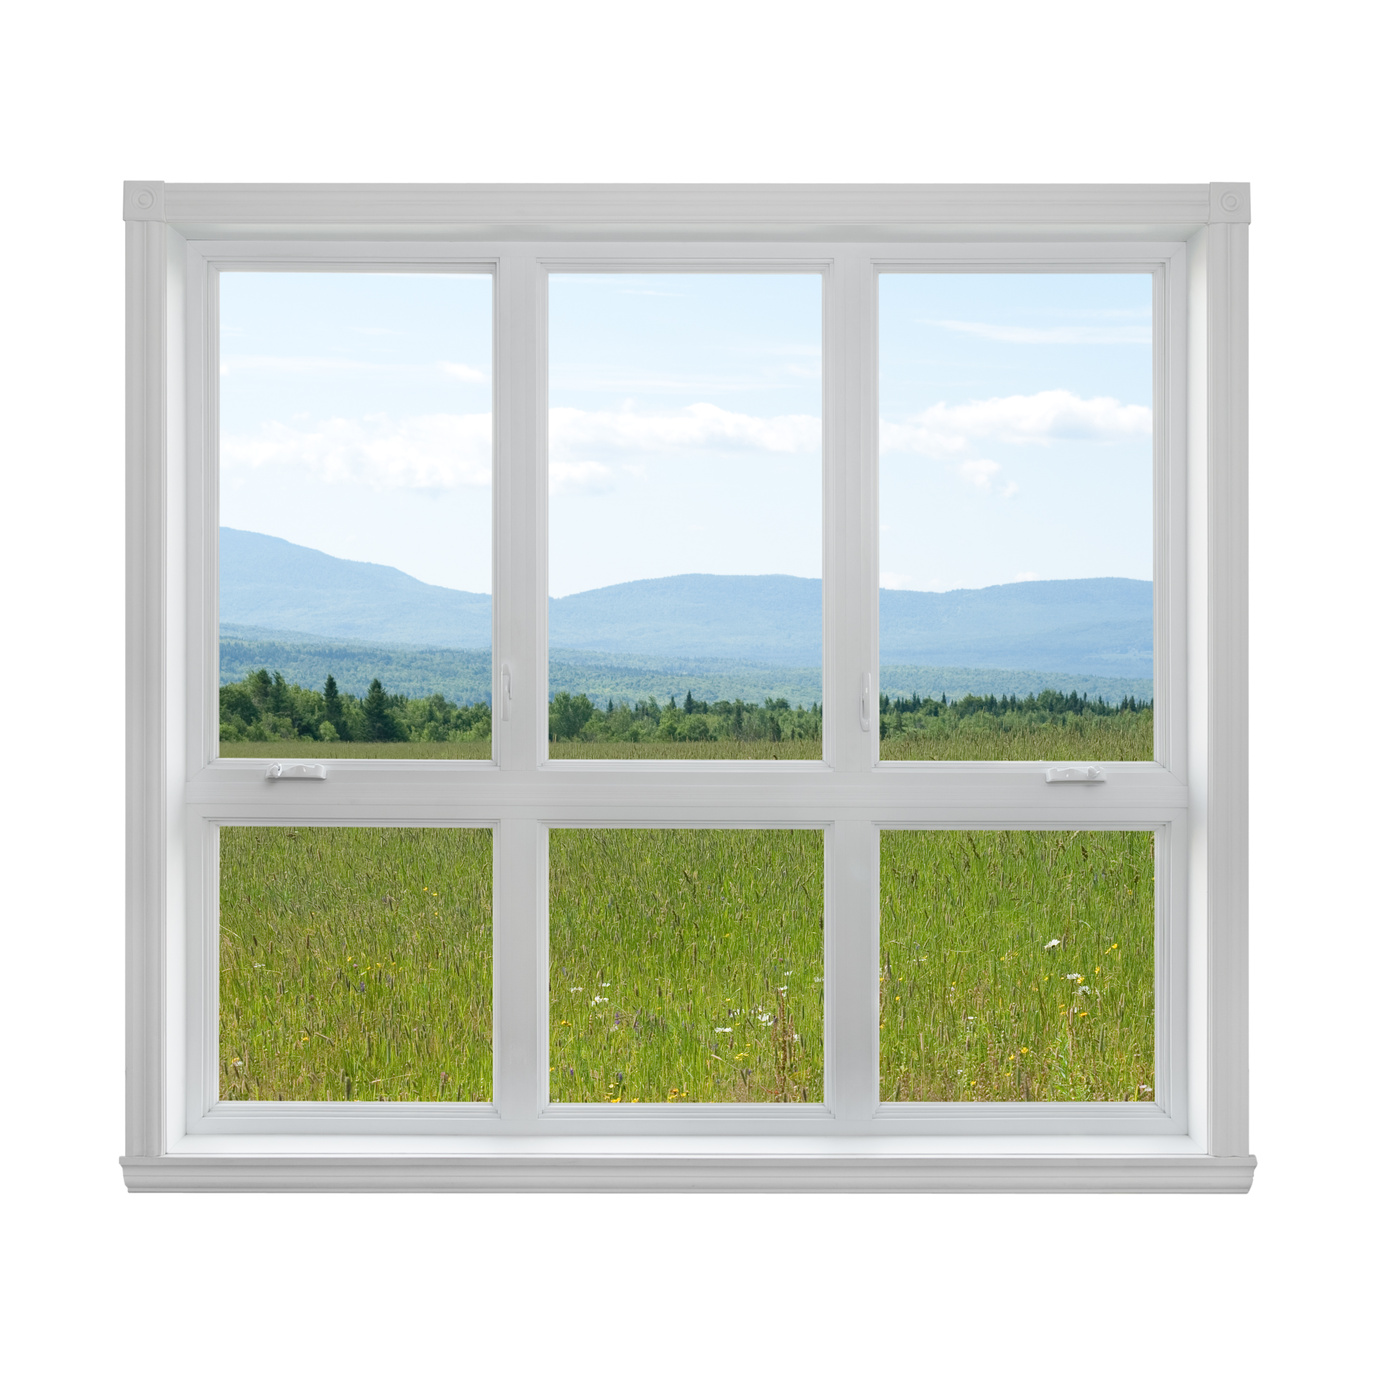 Going green energy efficient windows doors advantage for Energy windows